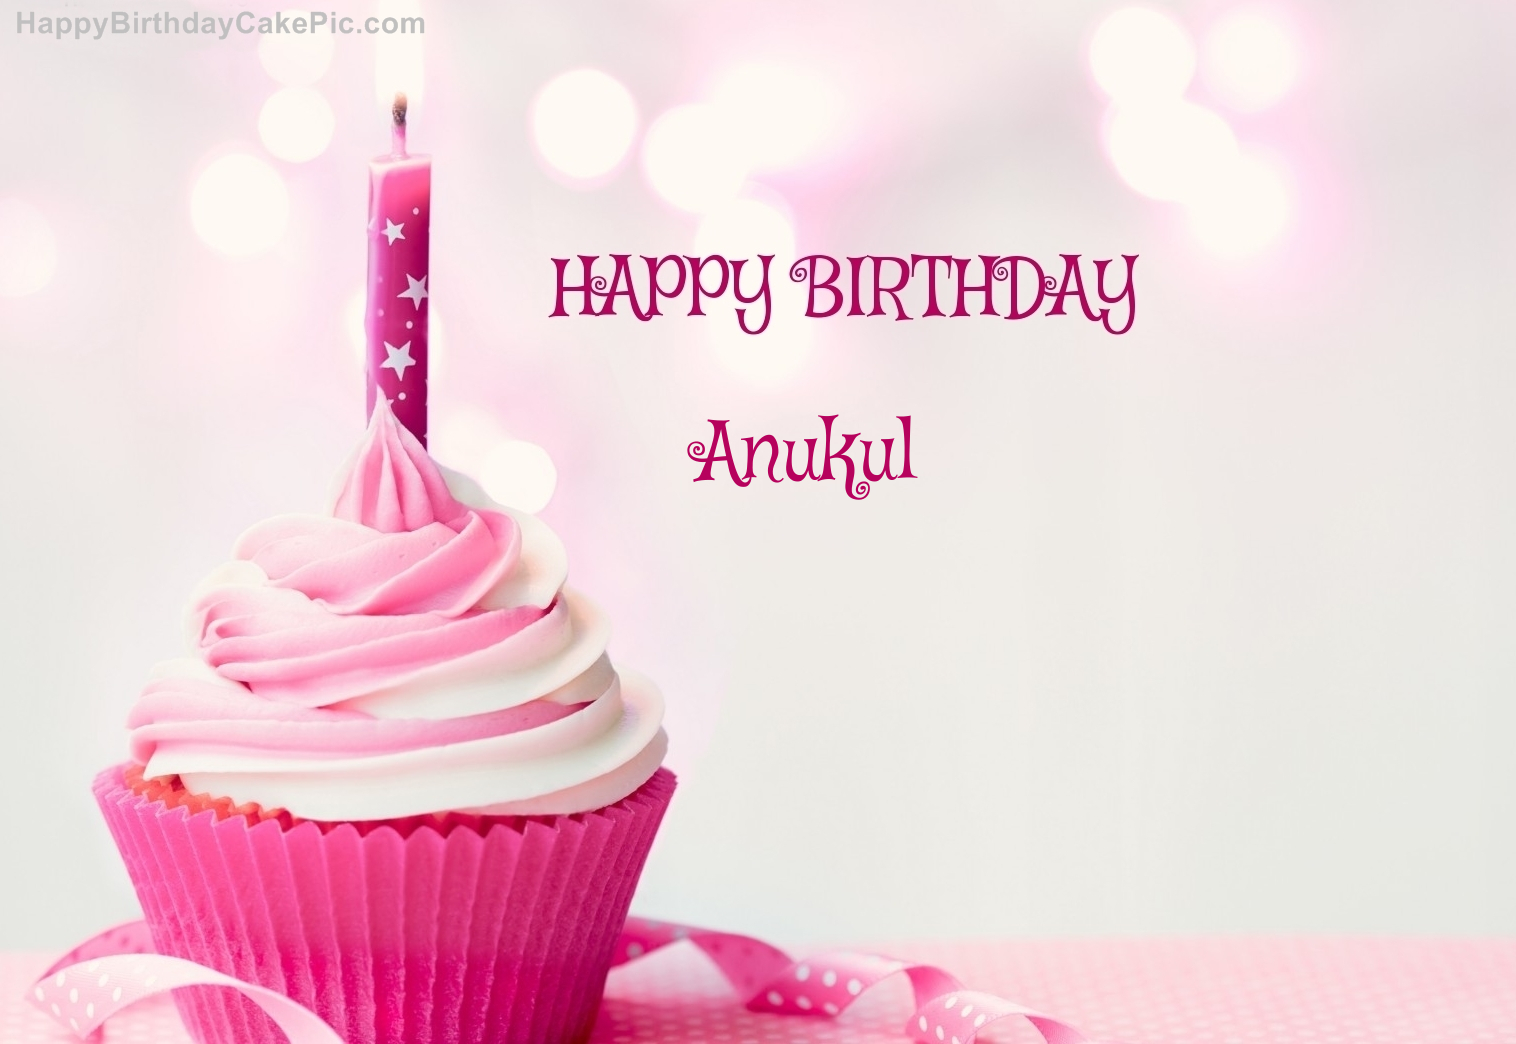 Happy Birthday Cupcake Candle Pink Cake For Anukul